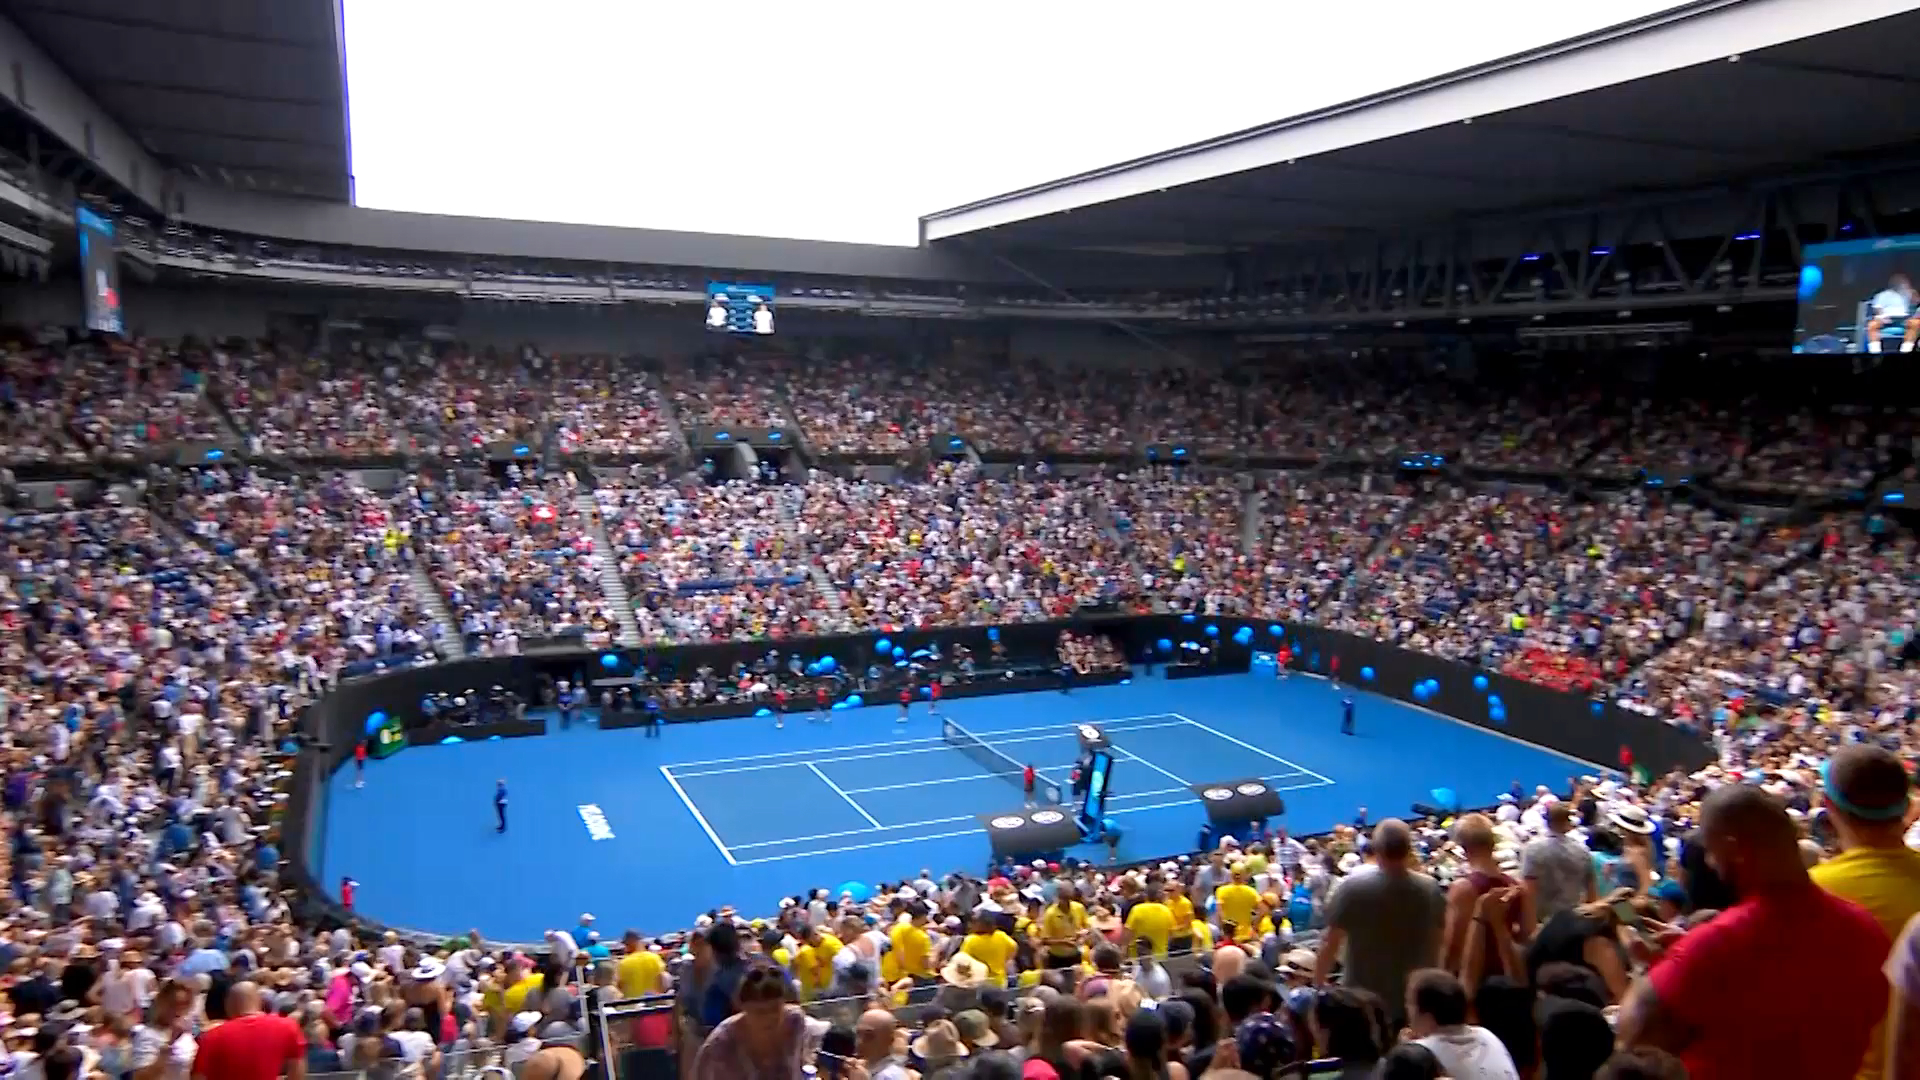 Lleyton Hewitt on why Rod Laver Arena is special